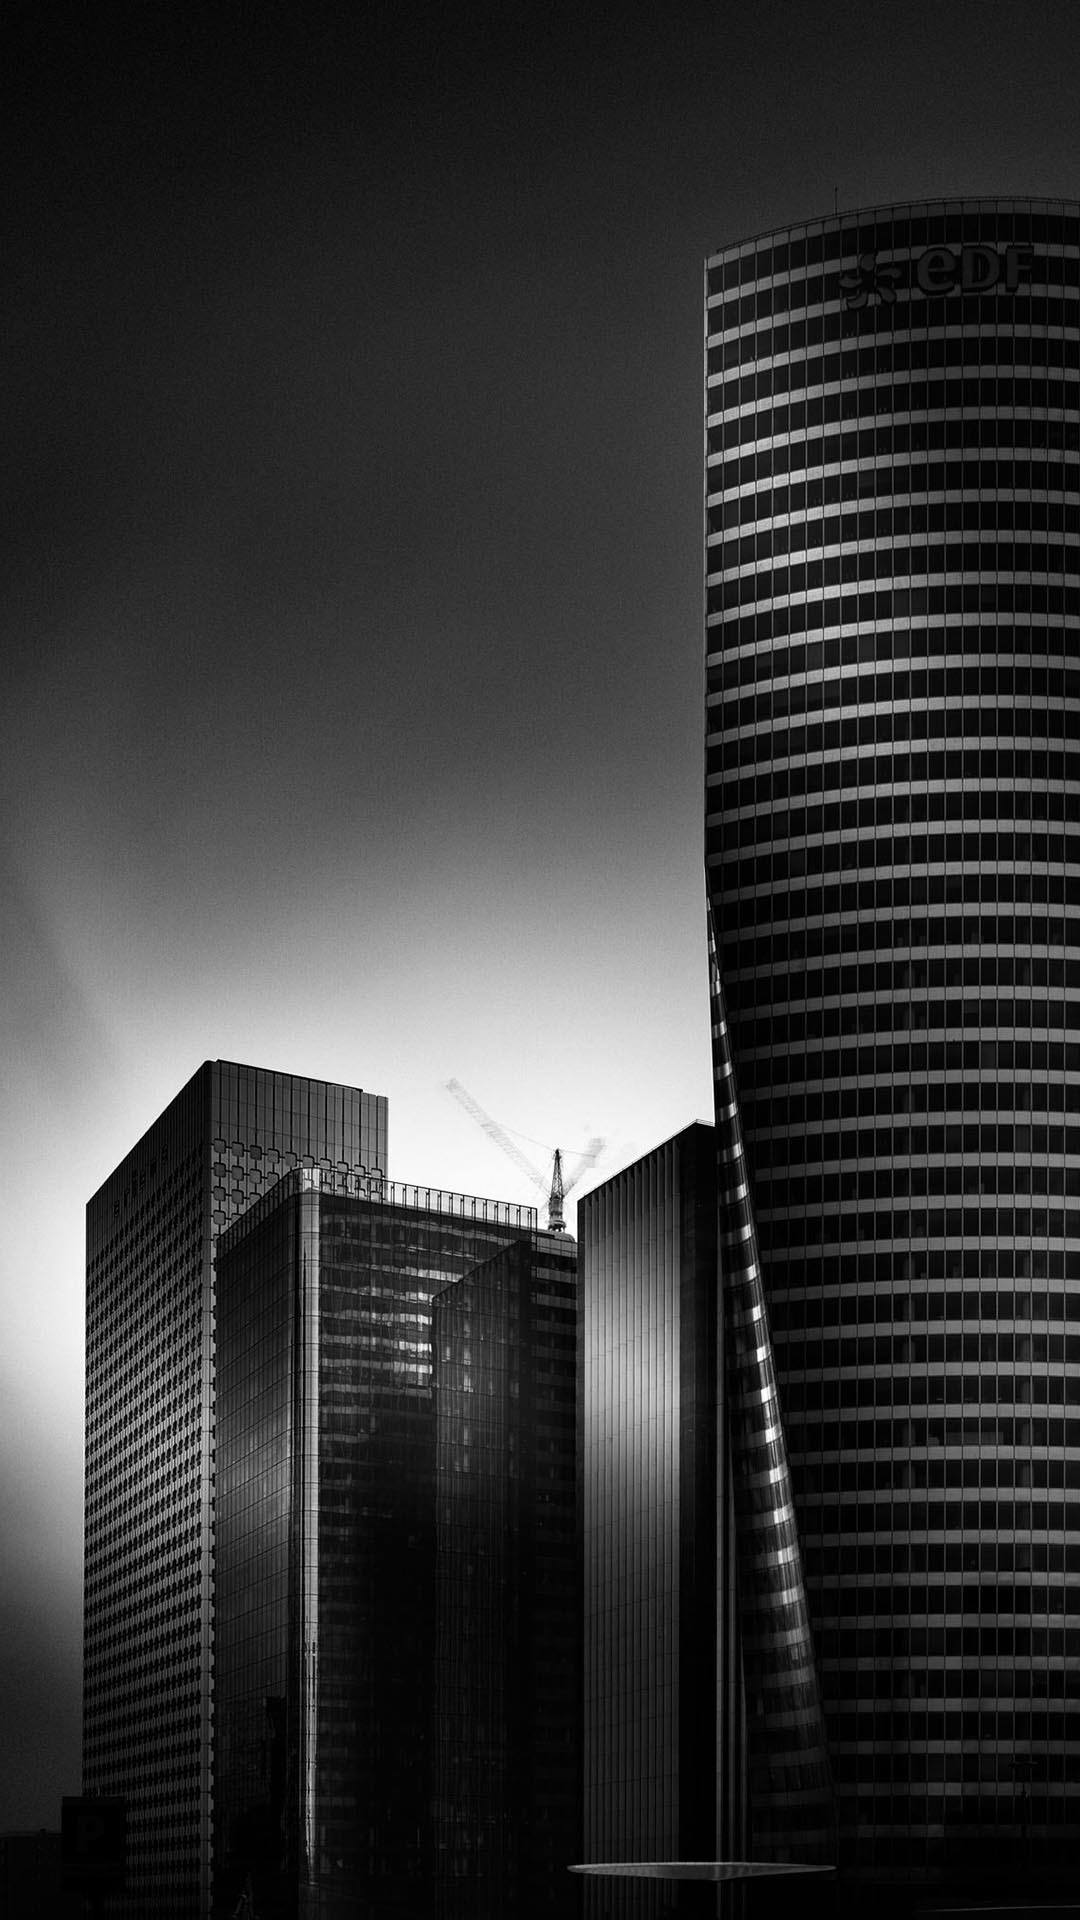 Abstract building - Best htc one wallpaper